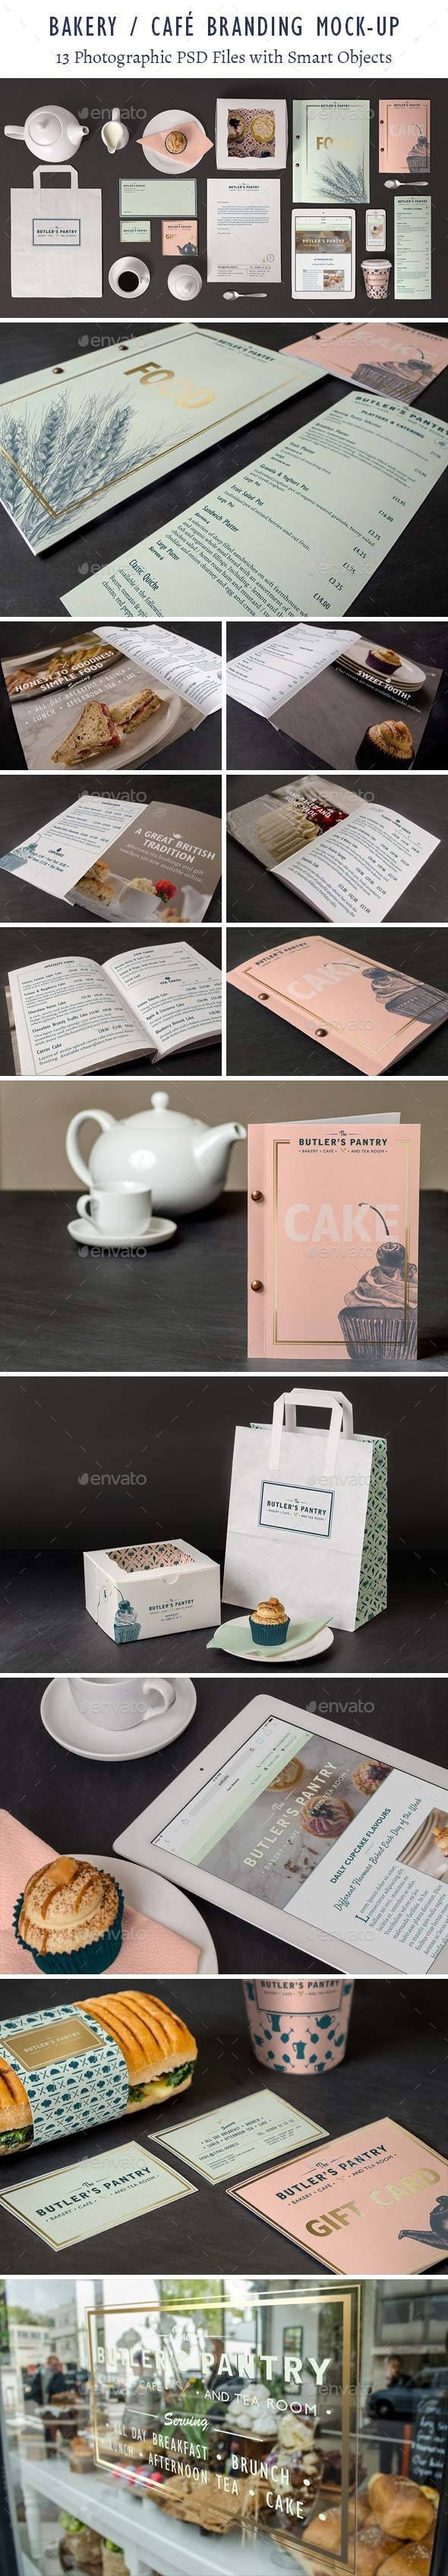 Bakery Cafe Branding Mockup - Product Mock-Ups Graphics